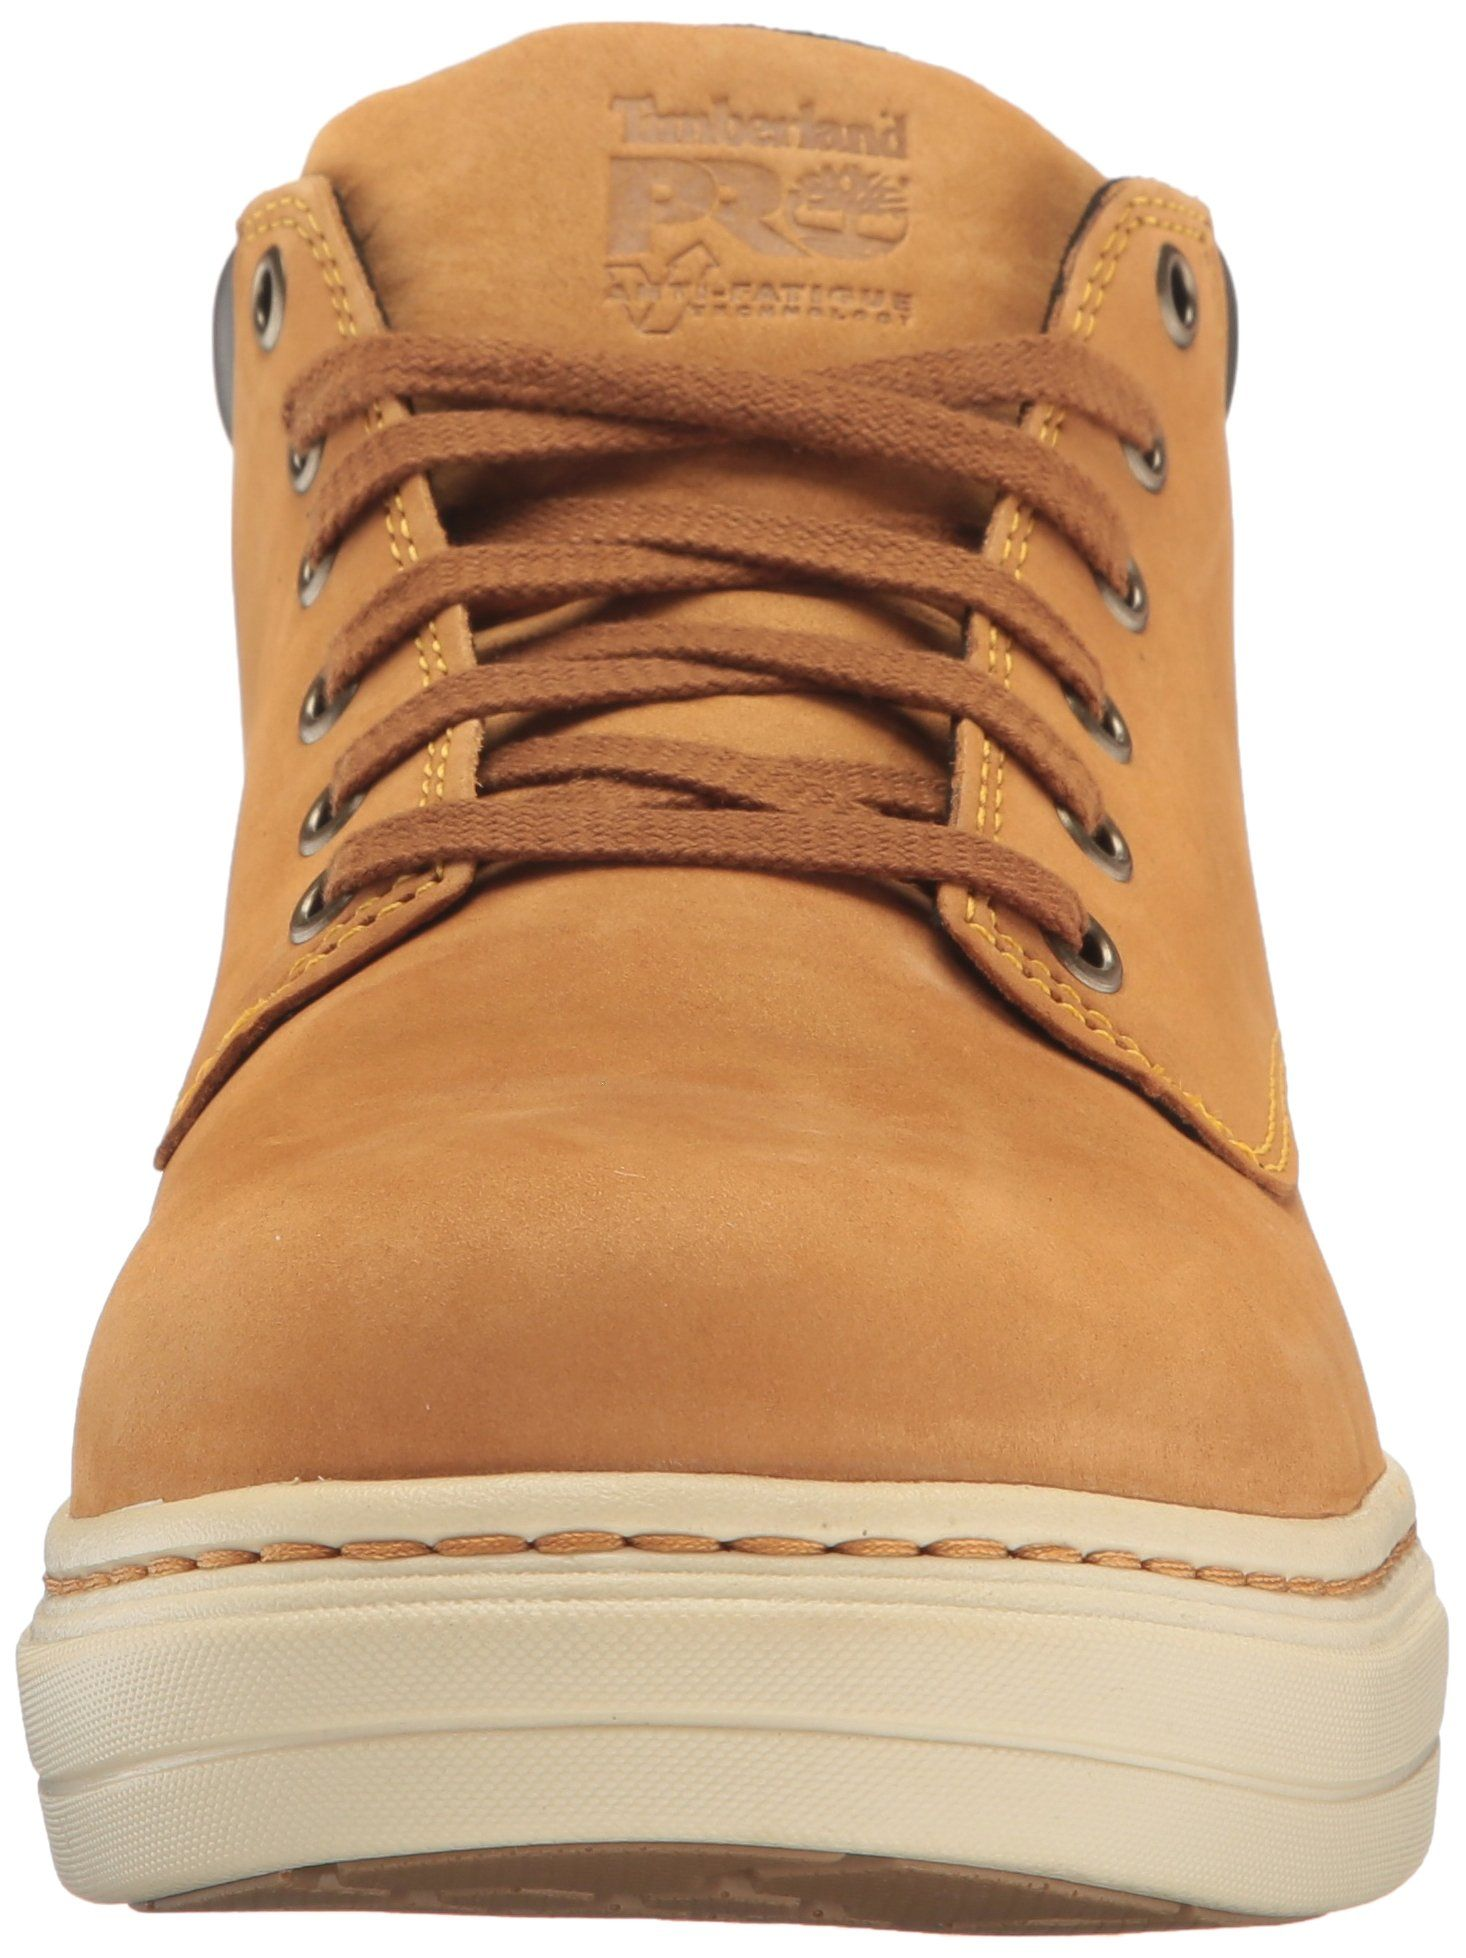 Industrial Chukka Alloy Eh Disruptor Timberland Pro Safety Toe Mens SUzVpMq